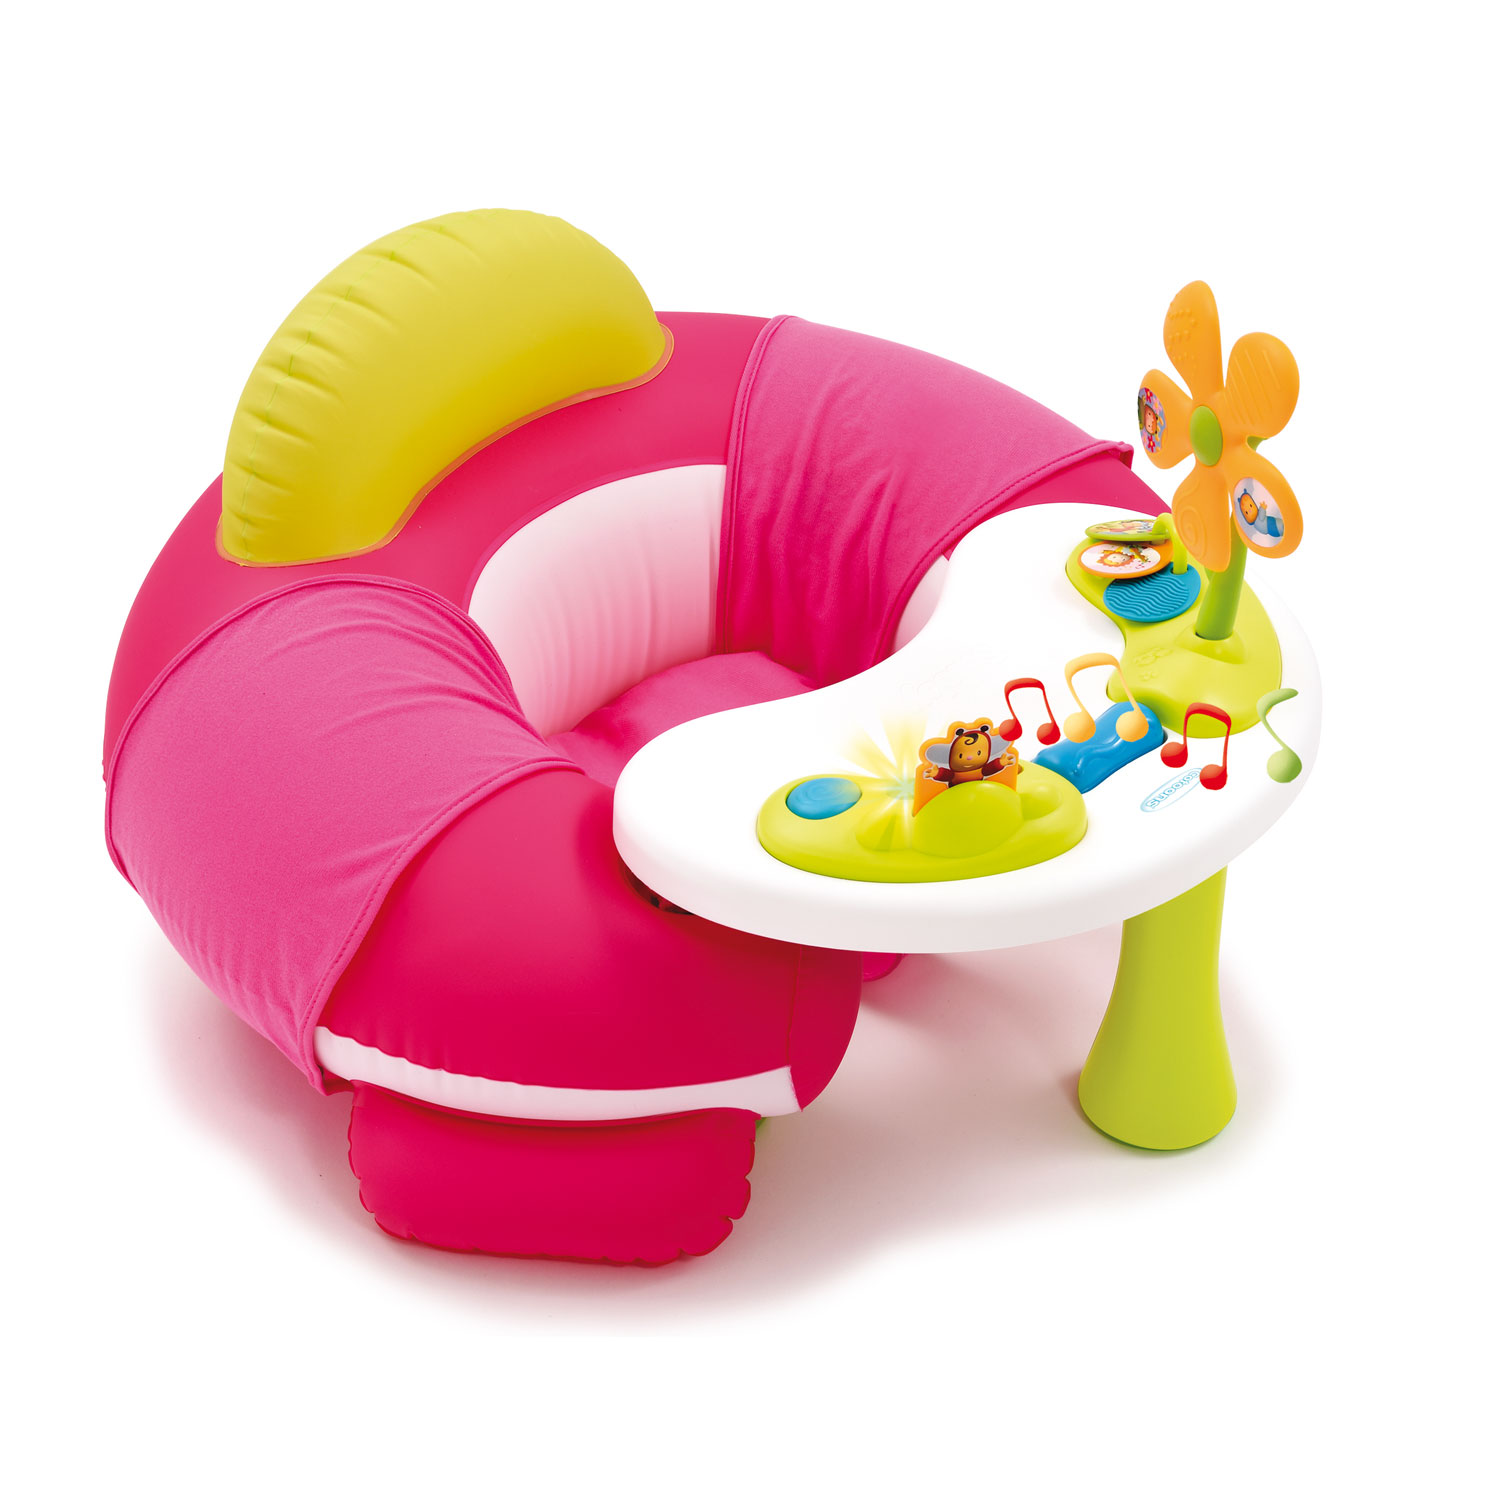 Siège gonflable Cosy seat Cotoons Rose